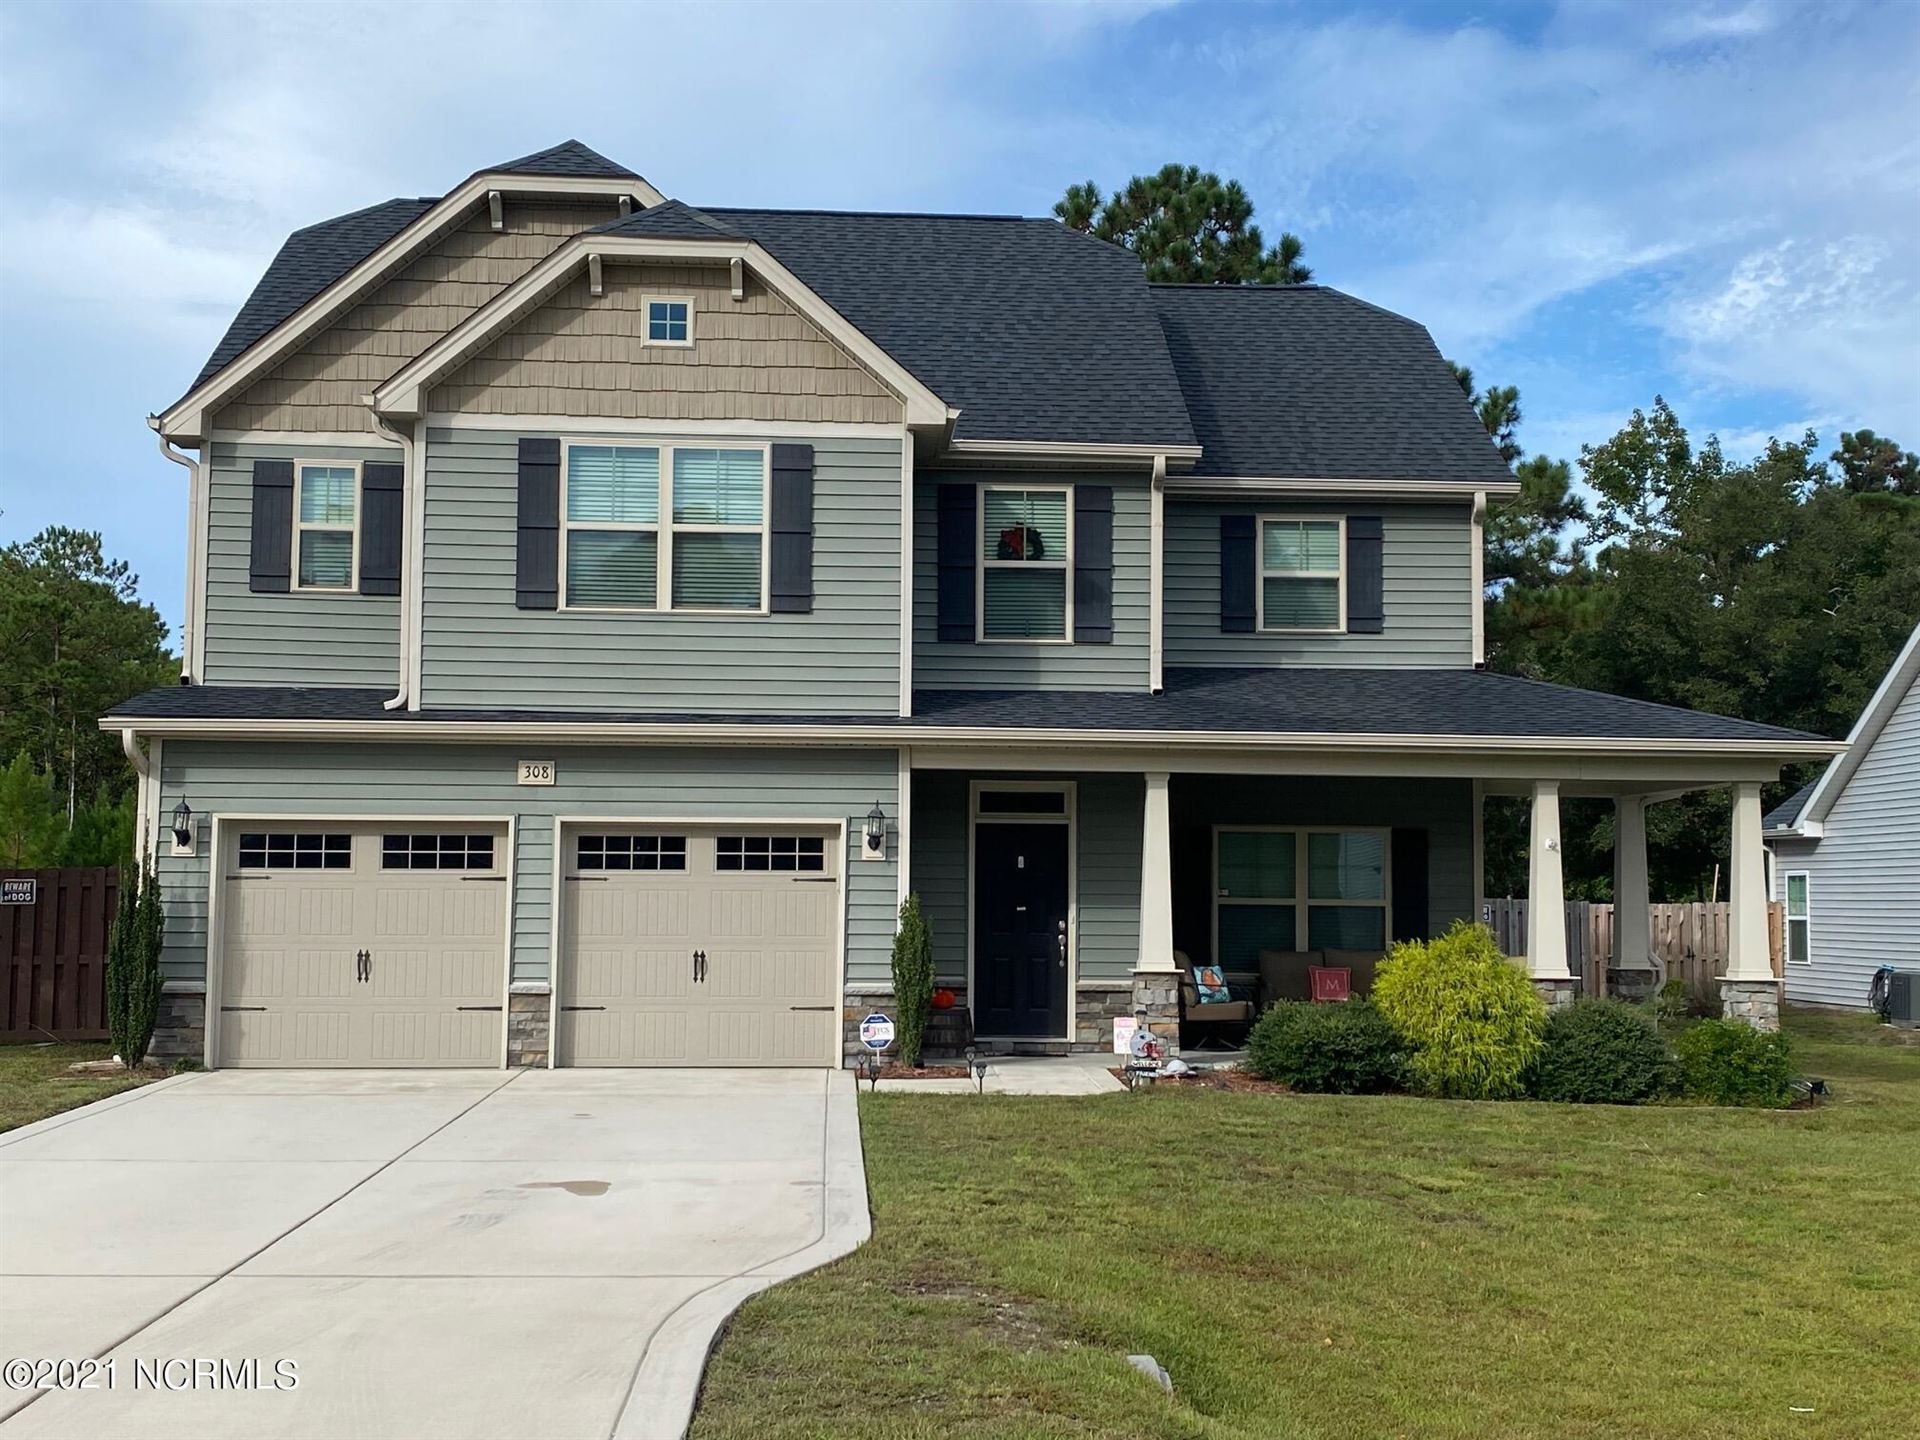 Photo of 308 Red Cedar Drive, Sneads Ferry, NC 28460 (MLS # 100293907)